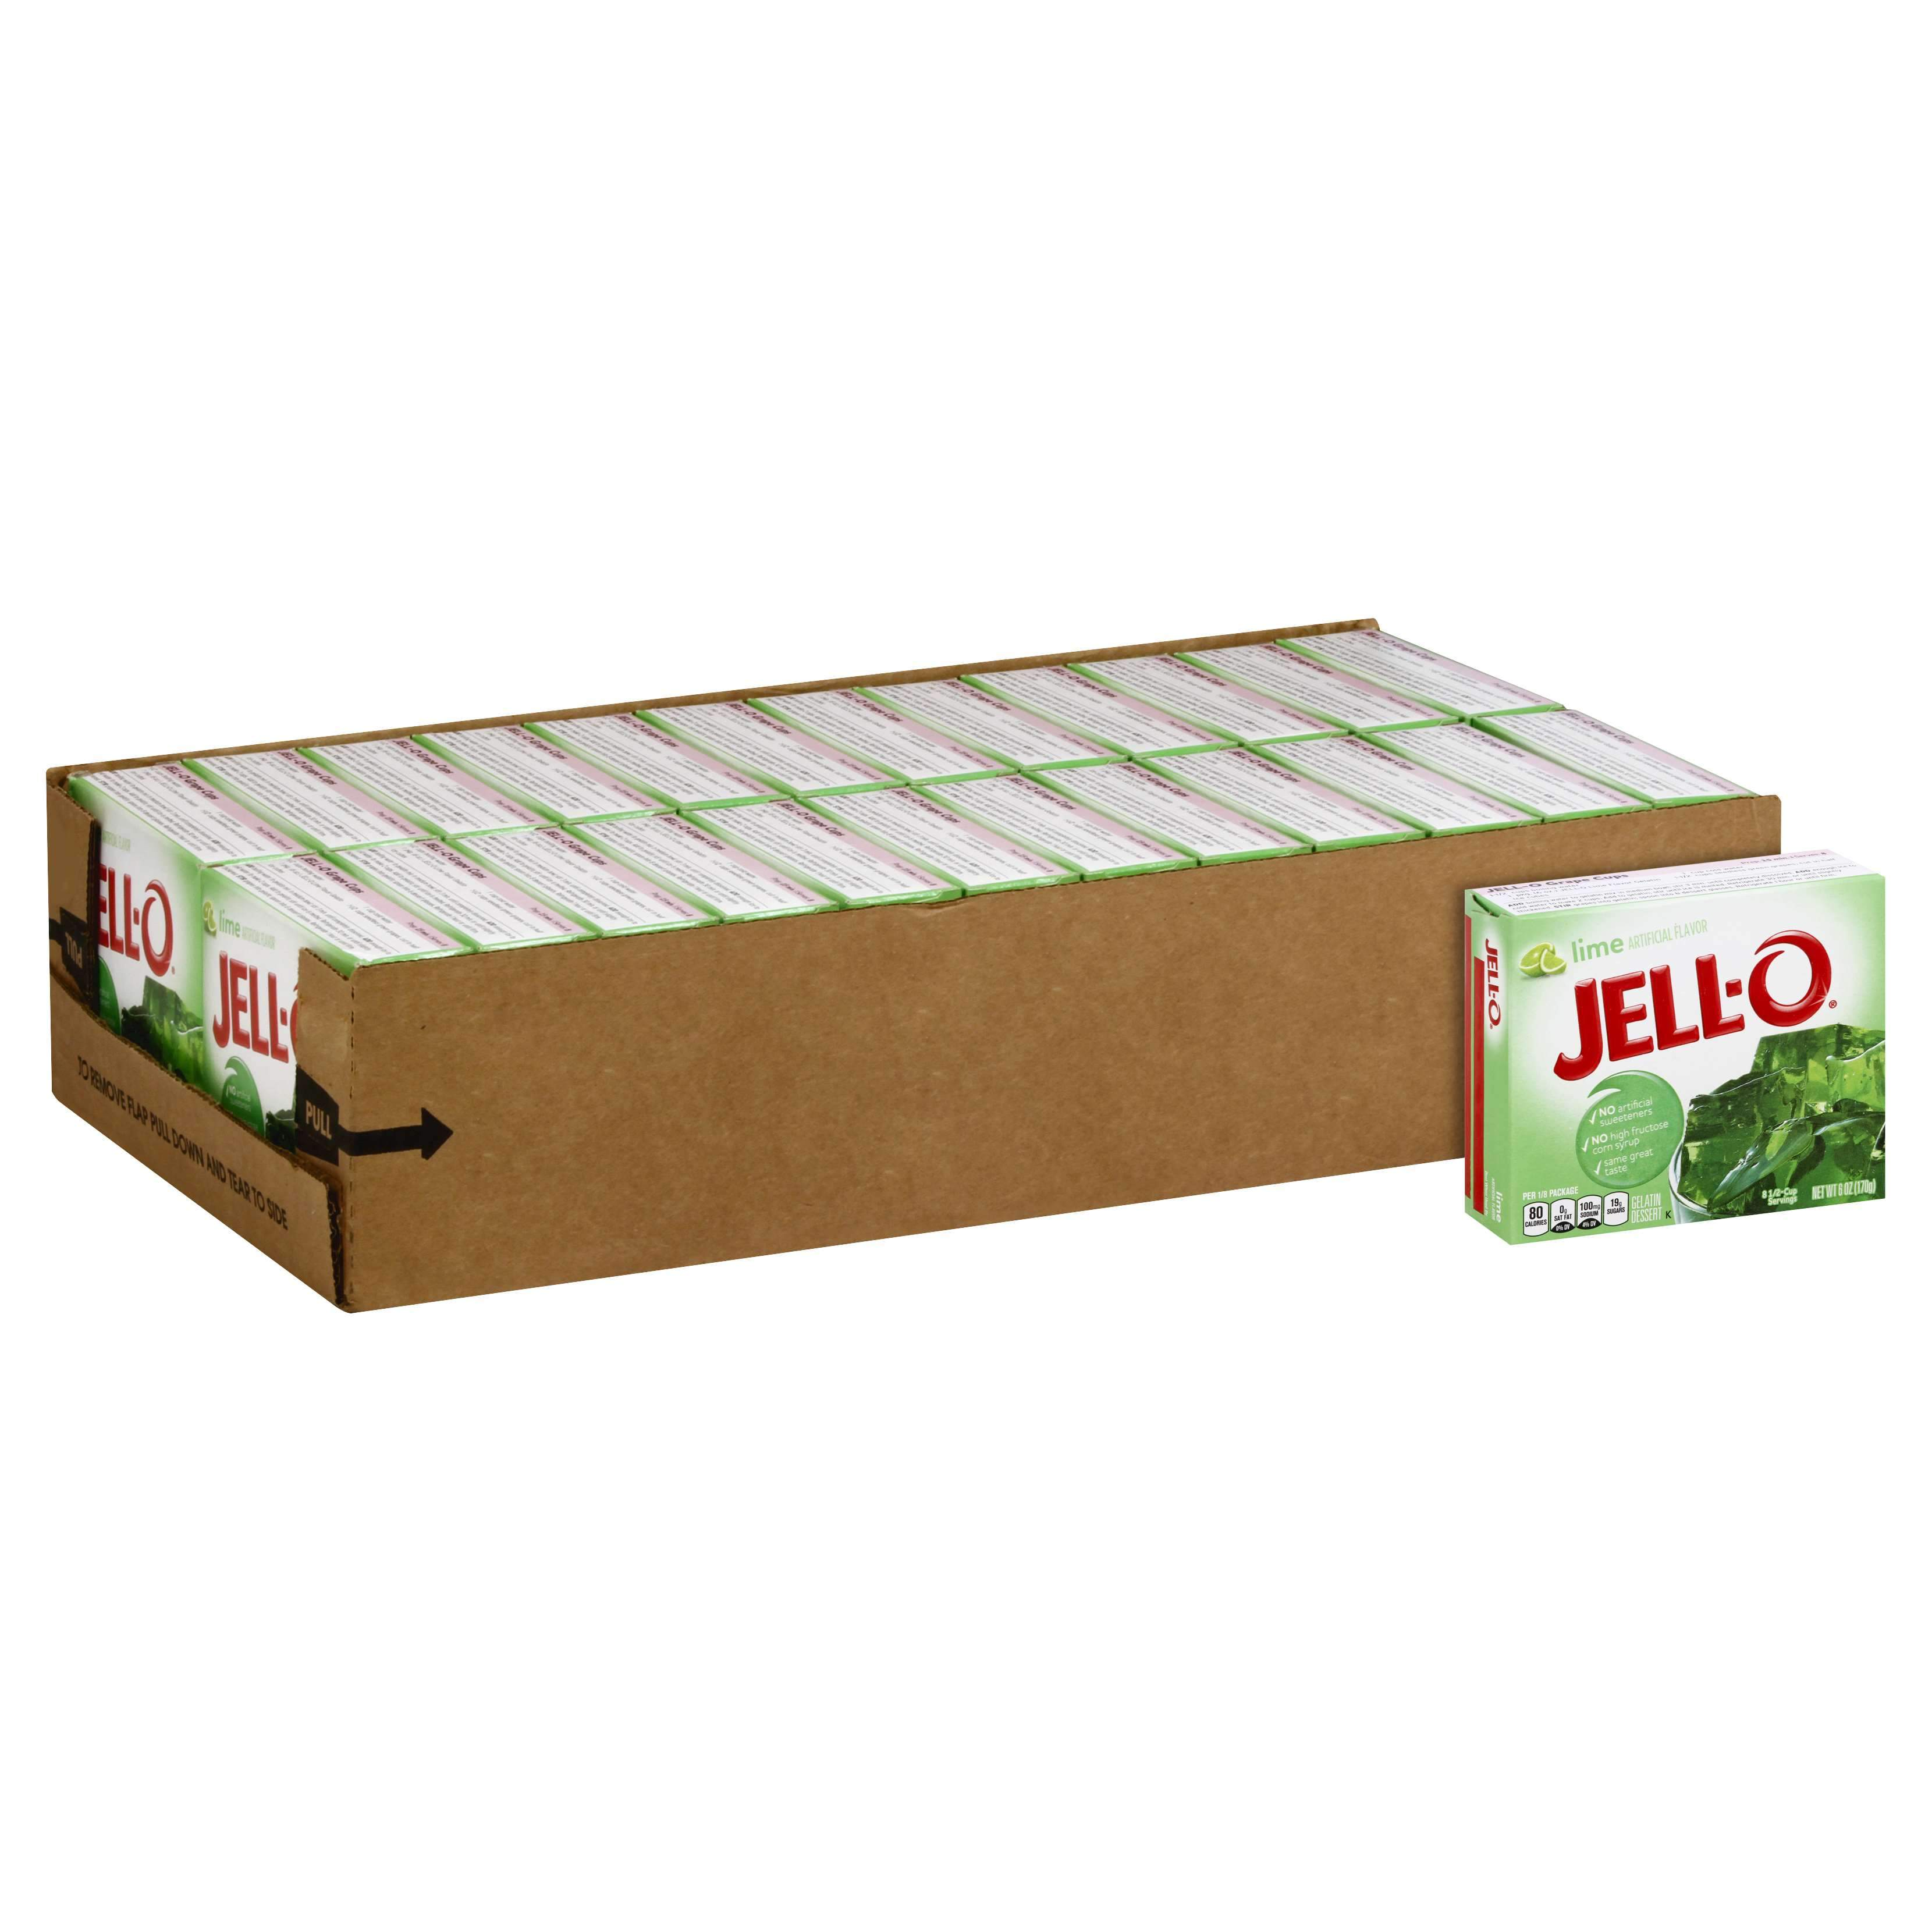 Jell-O Gelatin Mix Jell-O Lime 6 Oz-24 Count